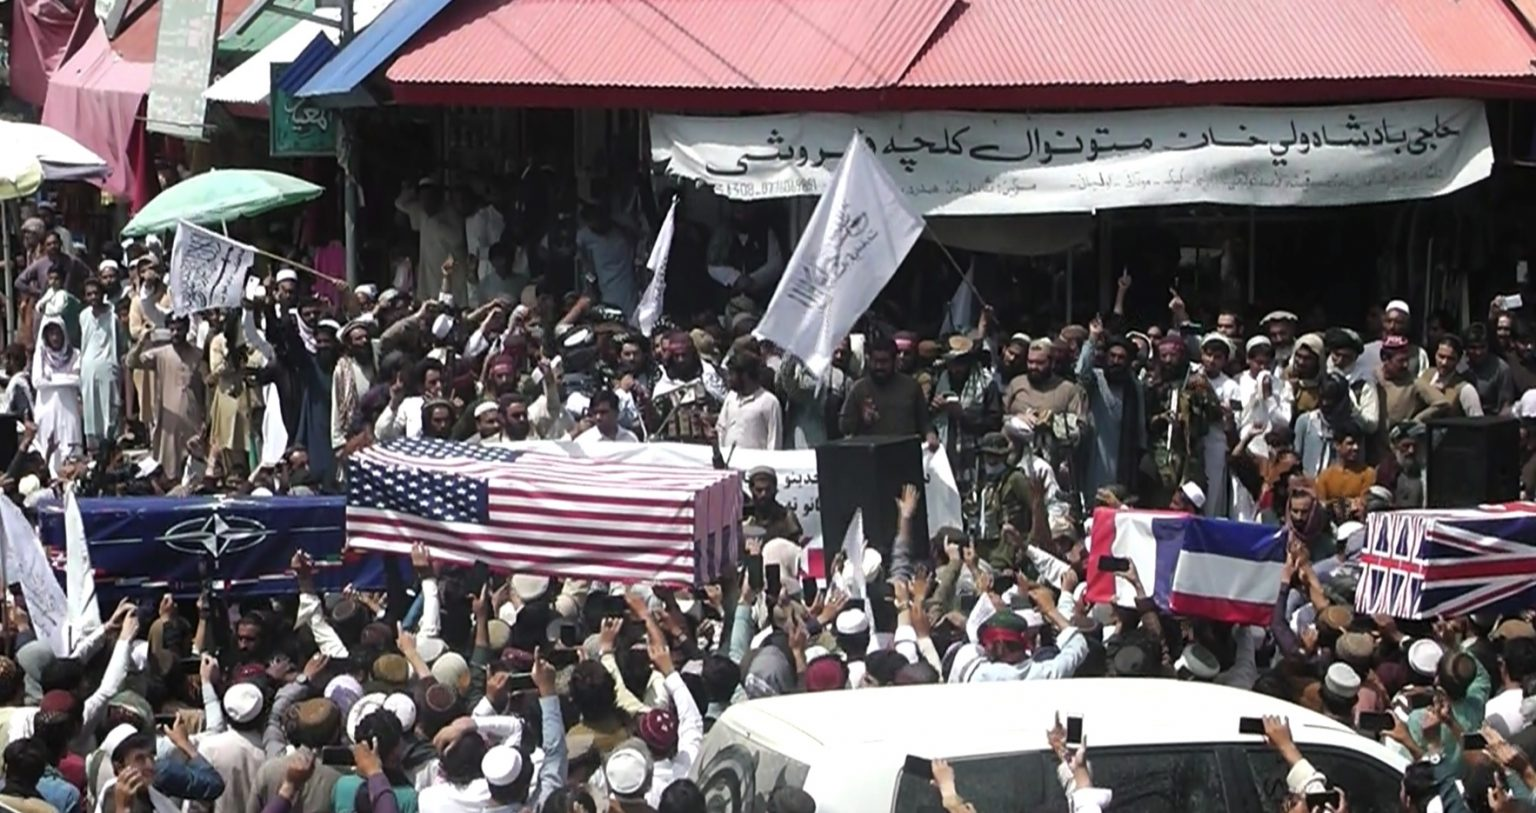 Taliban celebrates the end of 'occupying forces' with mock funeral, flag draped caskets of U.S. and allies